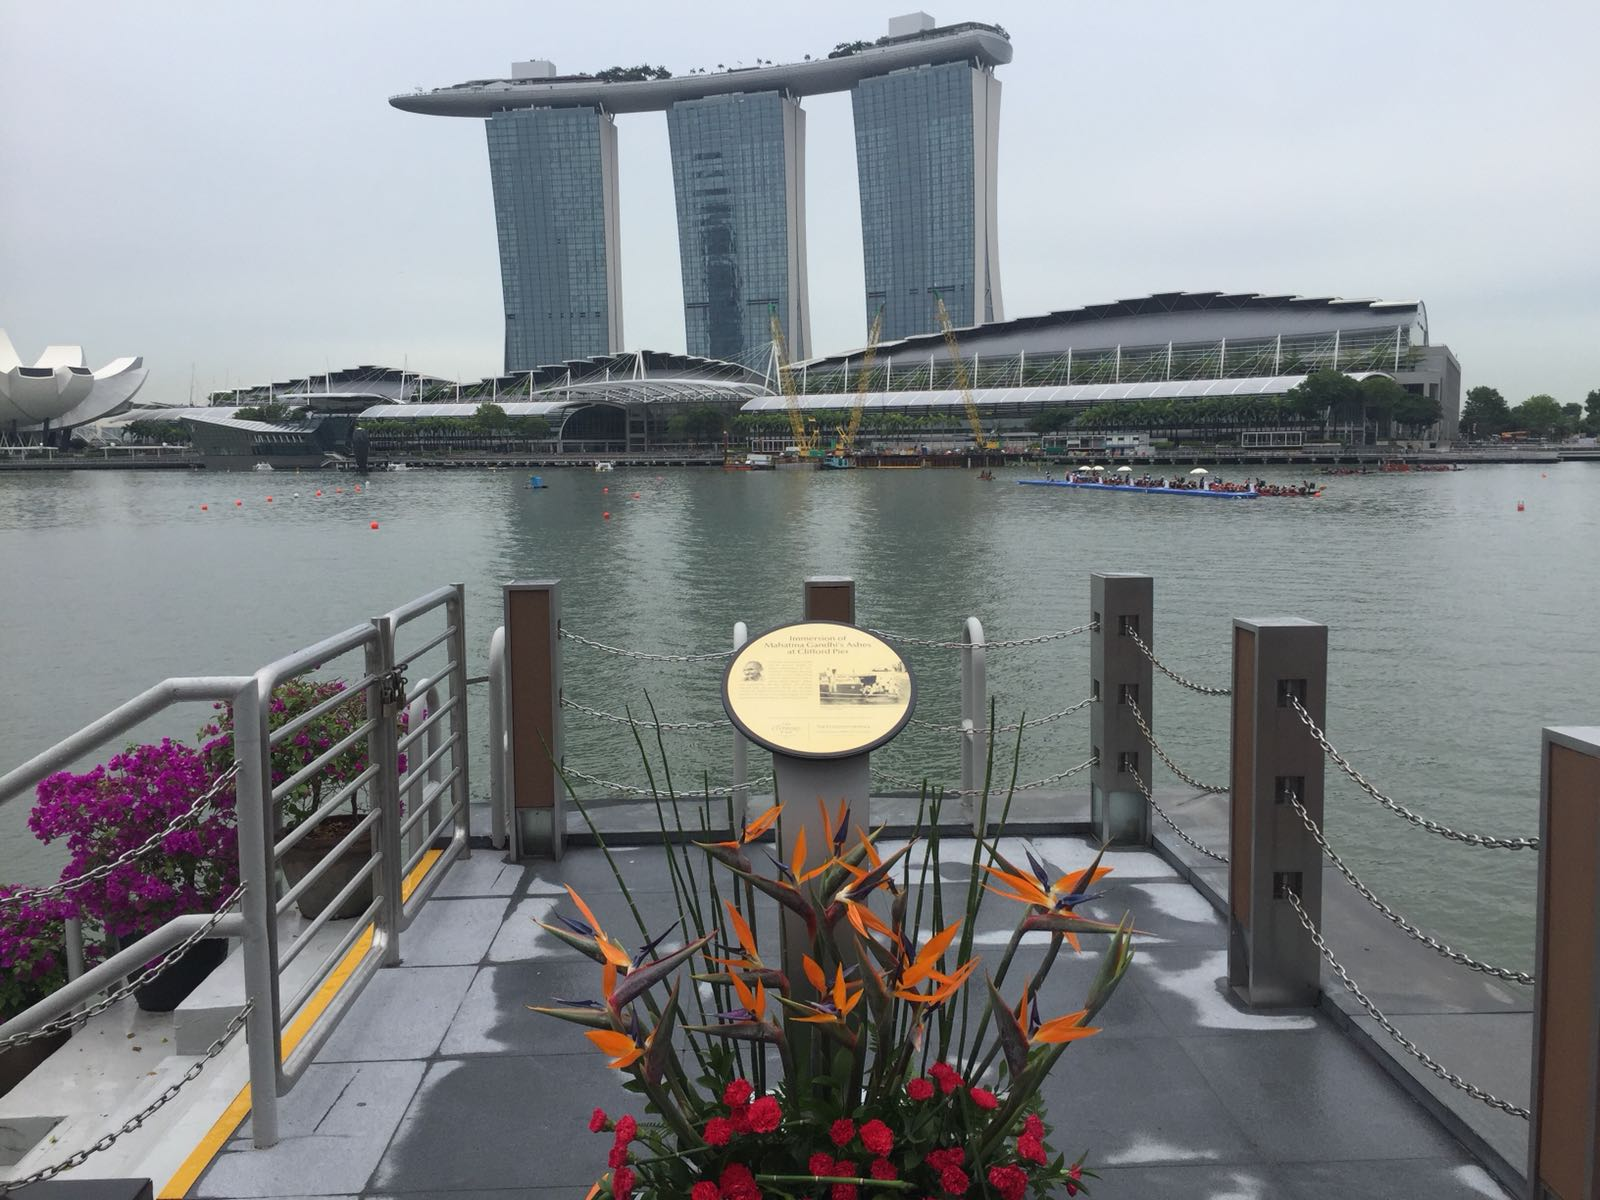 A view of Marina Bay from Clifford Pier with the board containing details about the immersion of Mahatma Gandhi's ashes  in the foreground.